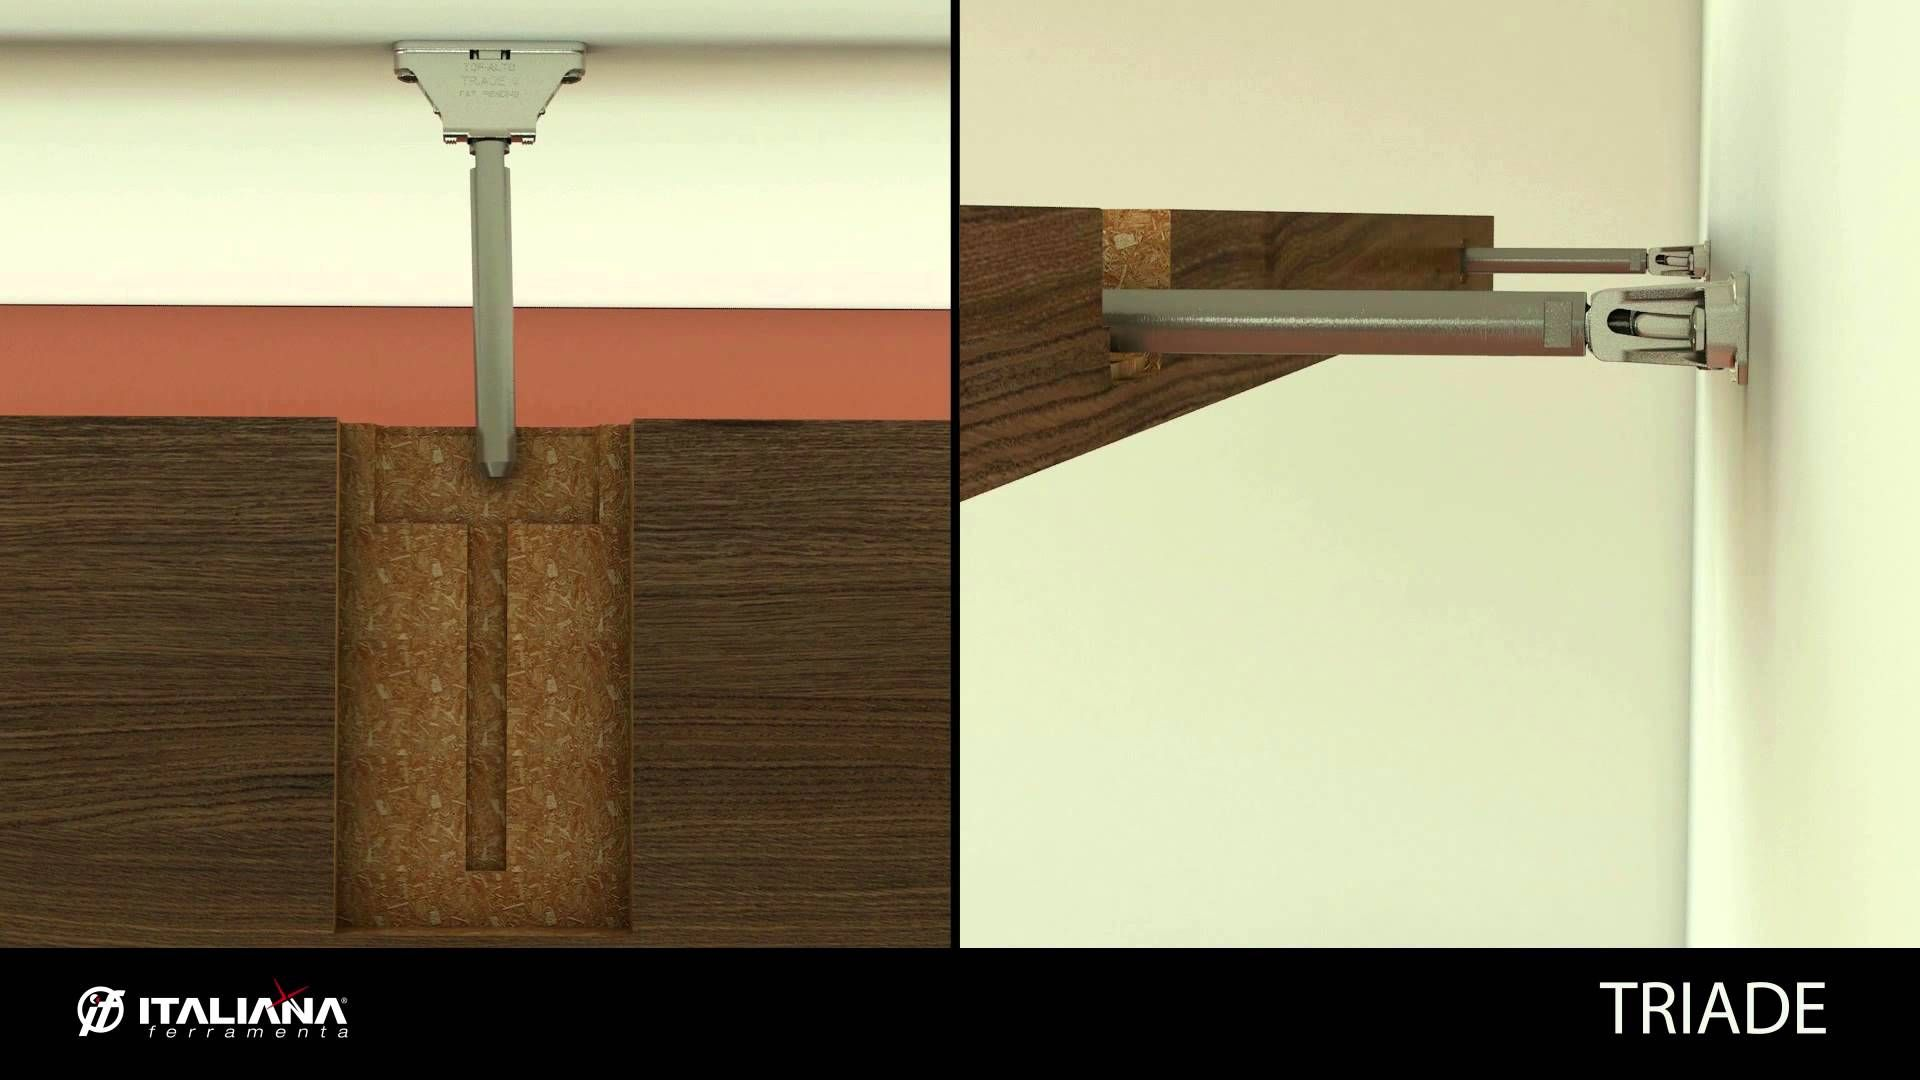 Triade Concealed Shelf Support Shelving System Italiana Ferramenta Wall Mounted Shelves Wall Shelves Floating Shelf Brackets